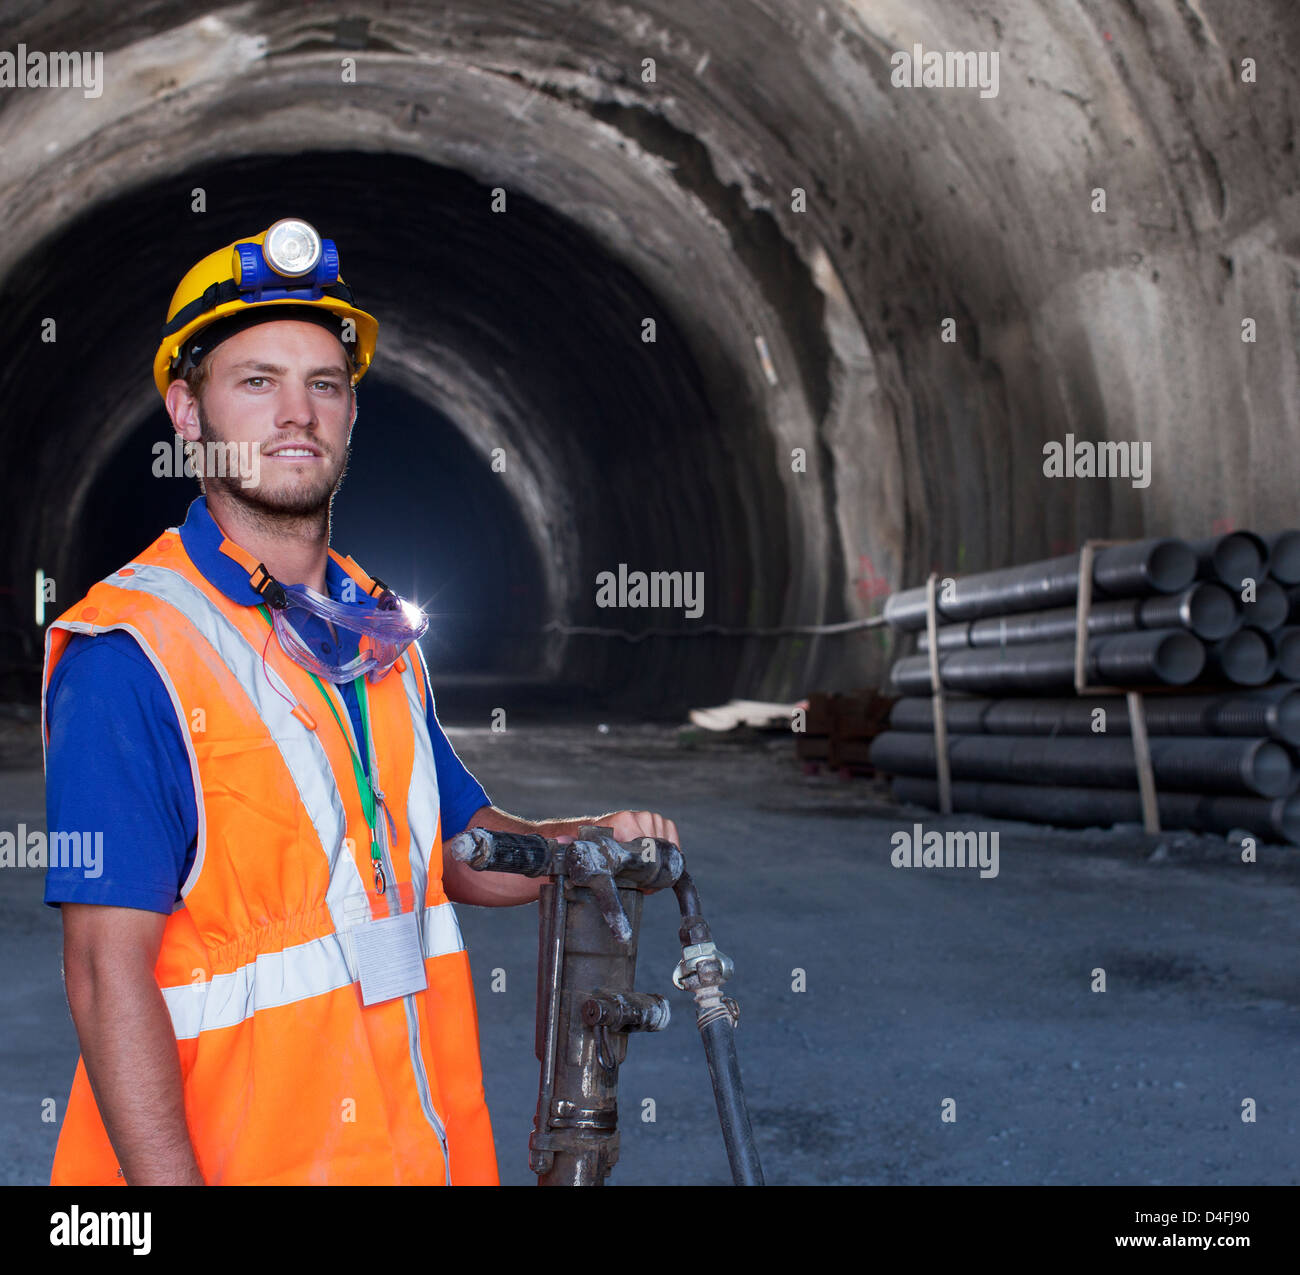 Worker standing in tunnel Stock Photo